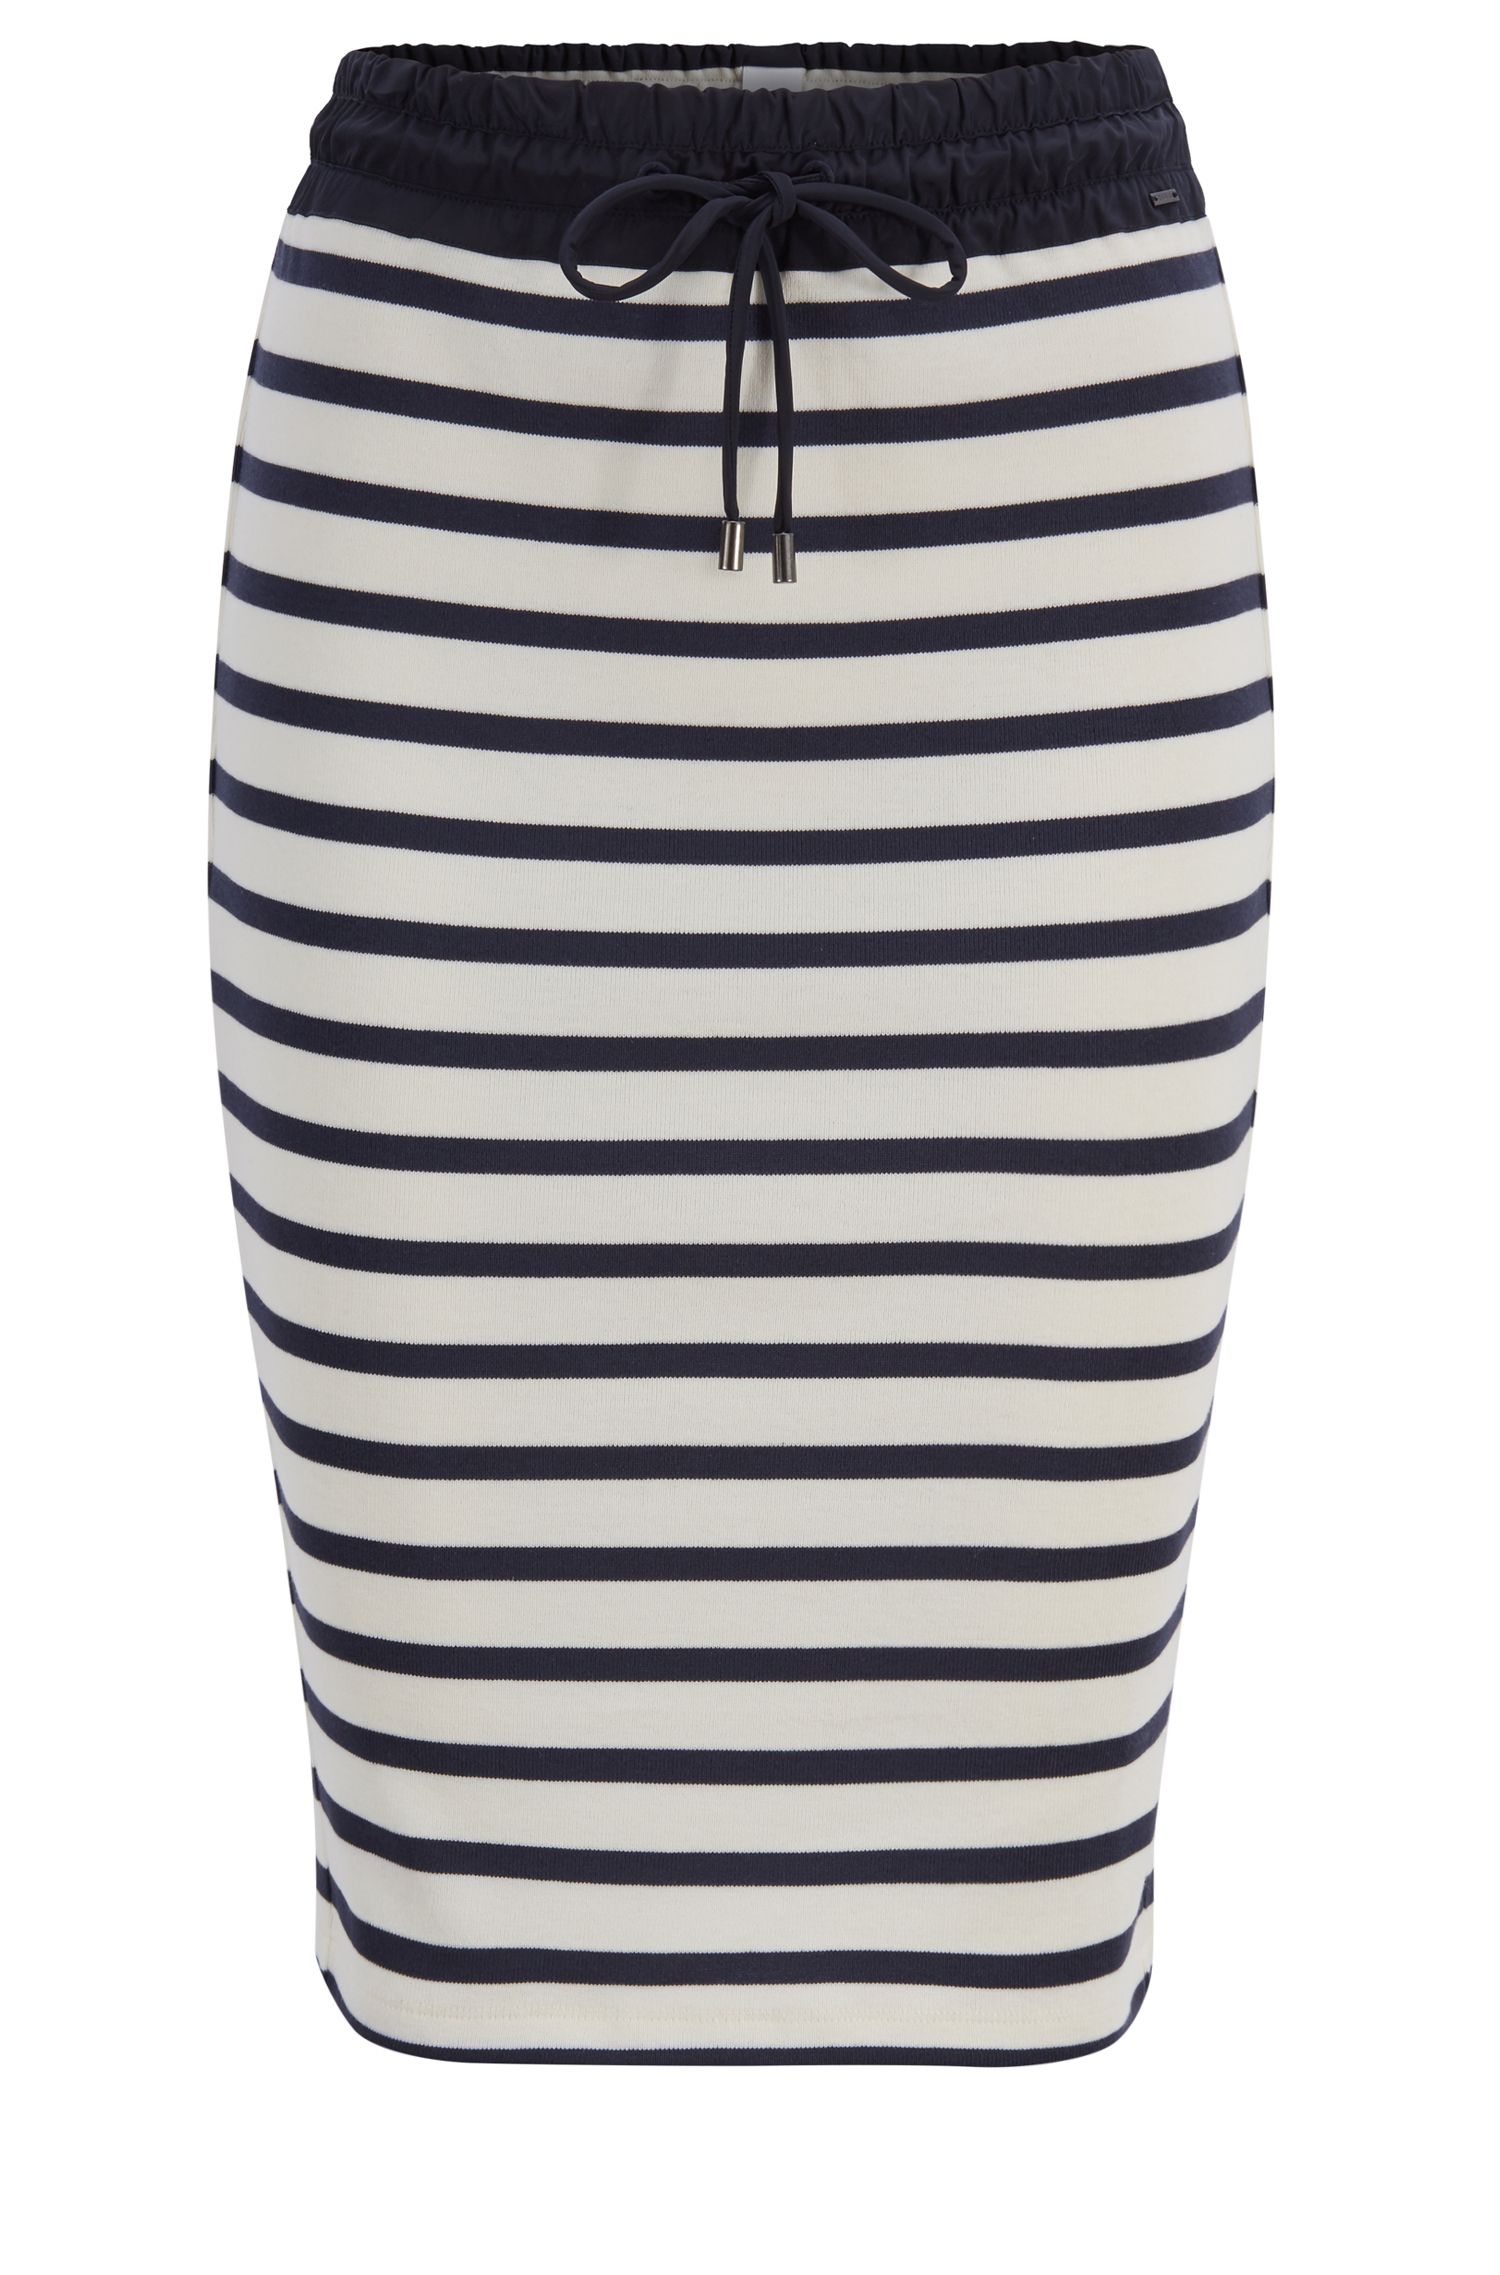 Striped cotton pencil skirt with technical drawstring waist, Patterned